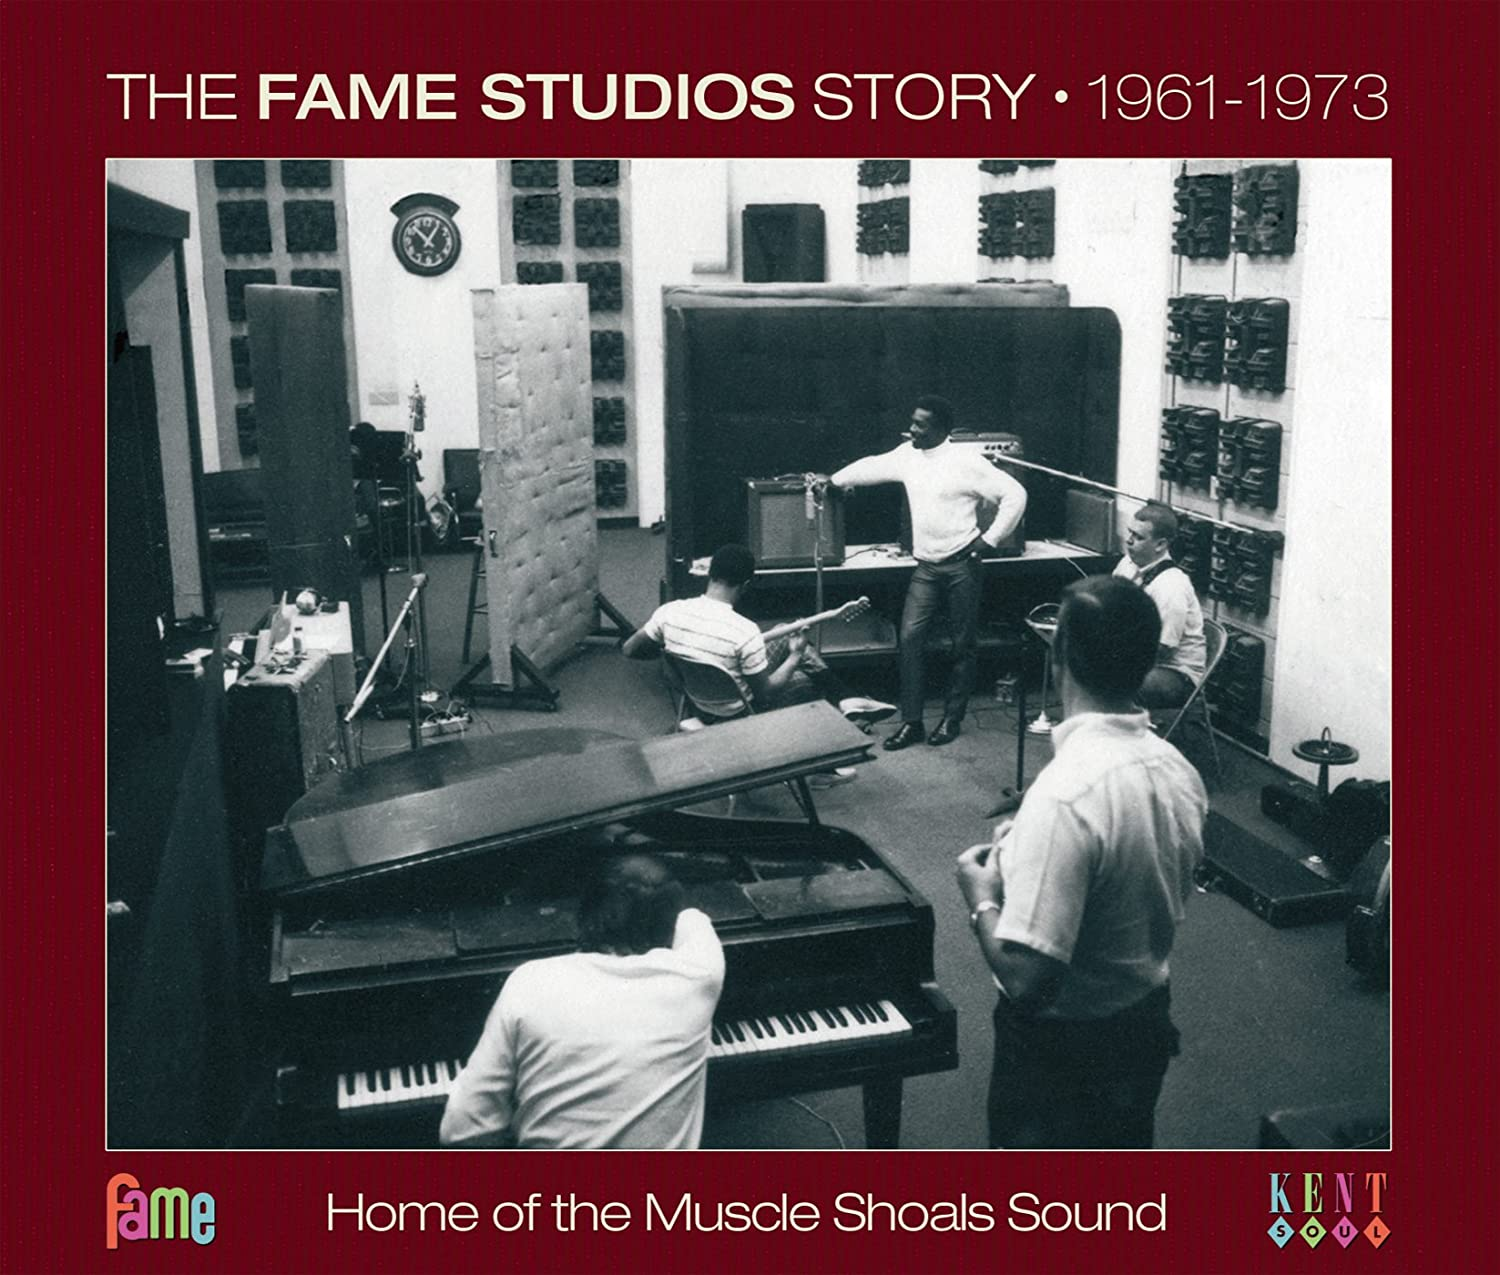 The Fame Studio Story 1961-1973